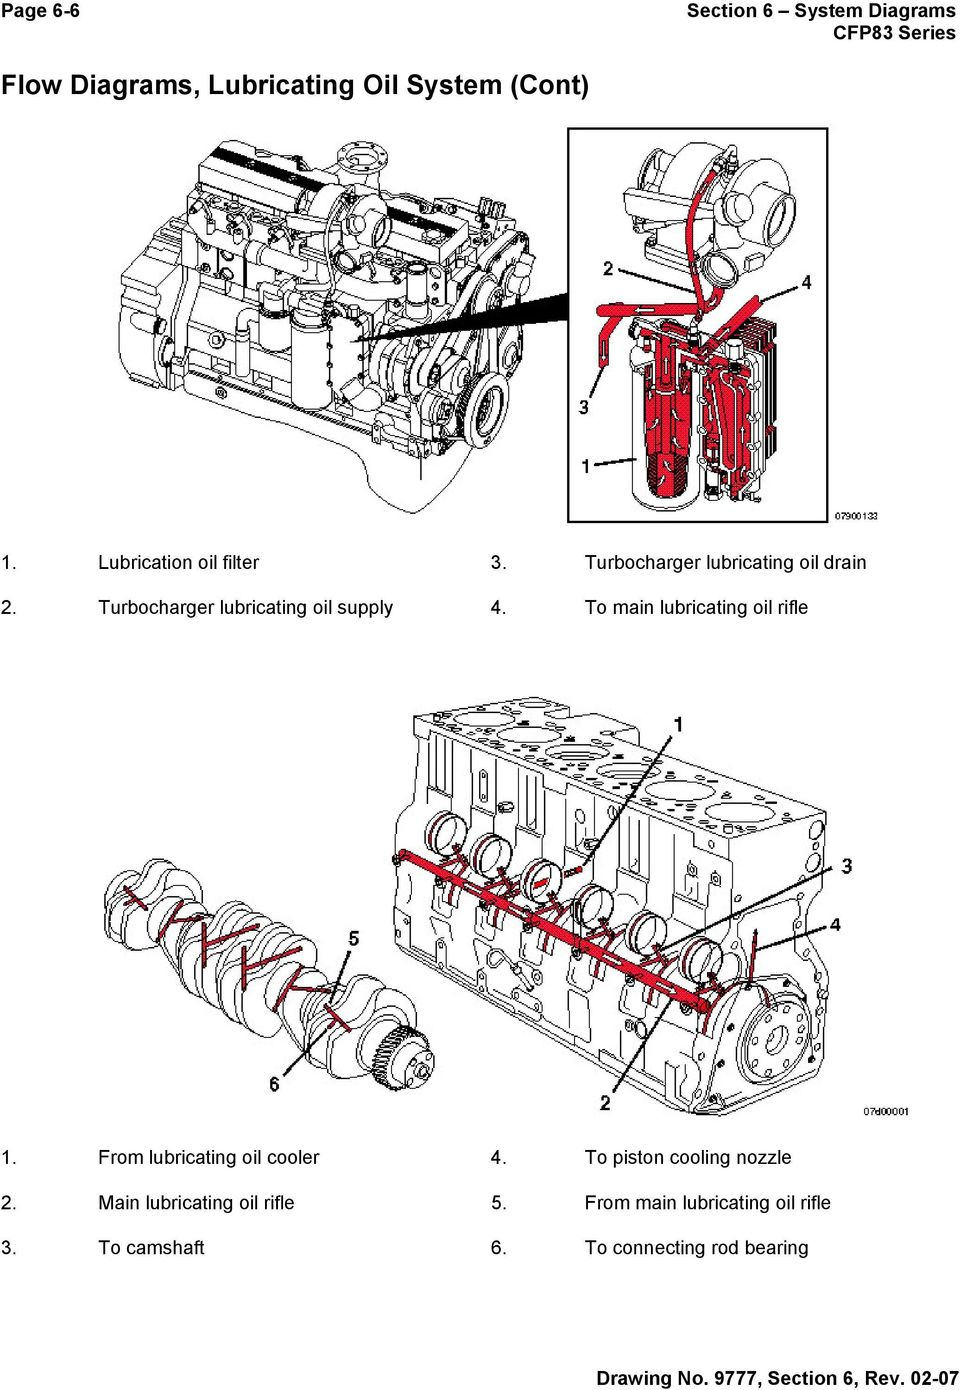 medium resolution of turbocharger lubricating oil supply 4 to main lubricating oil rifle 1 7 section 6 system diagrams